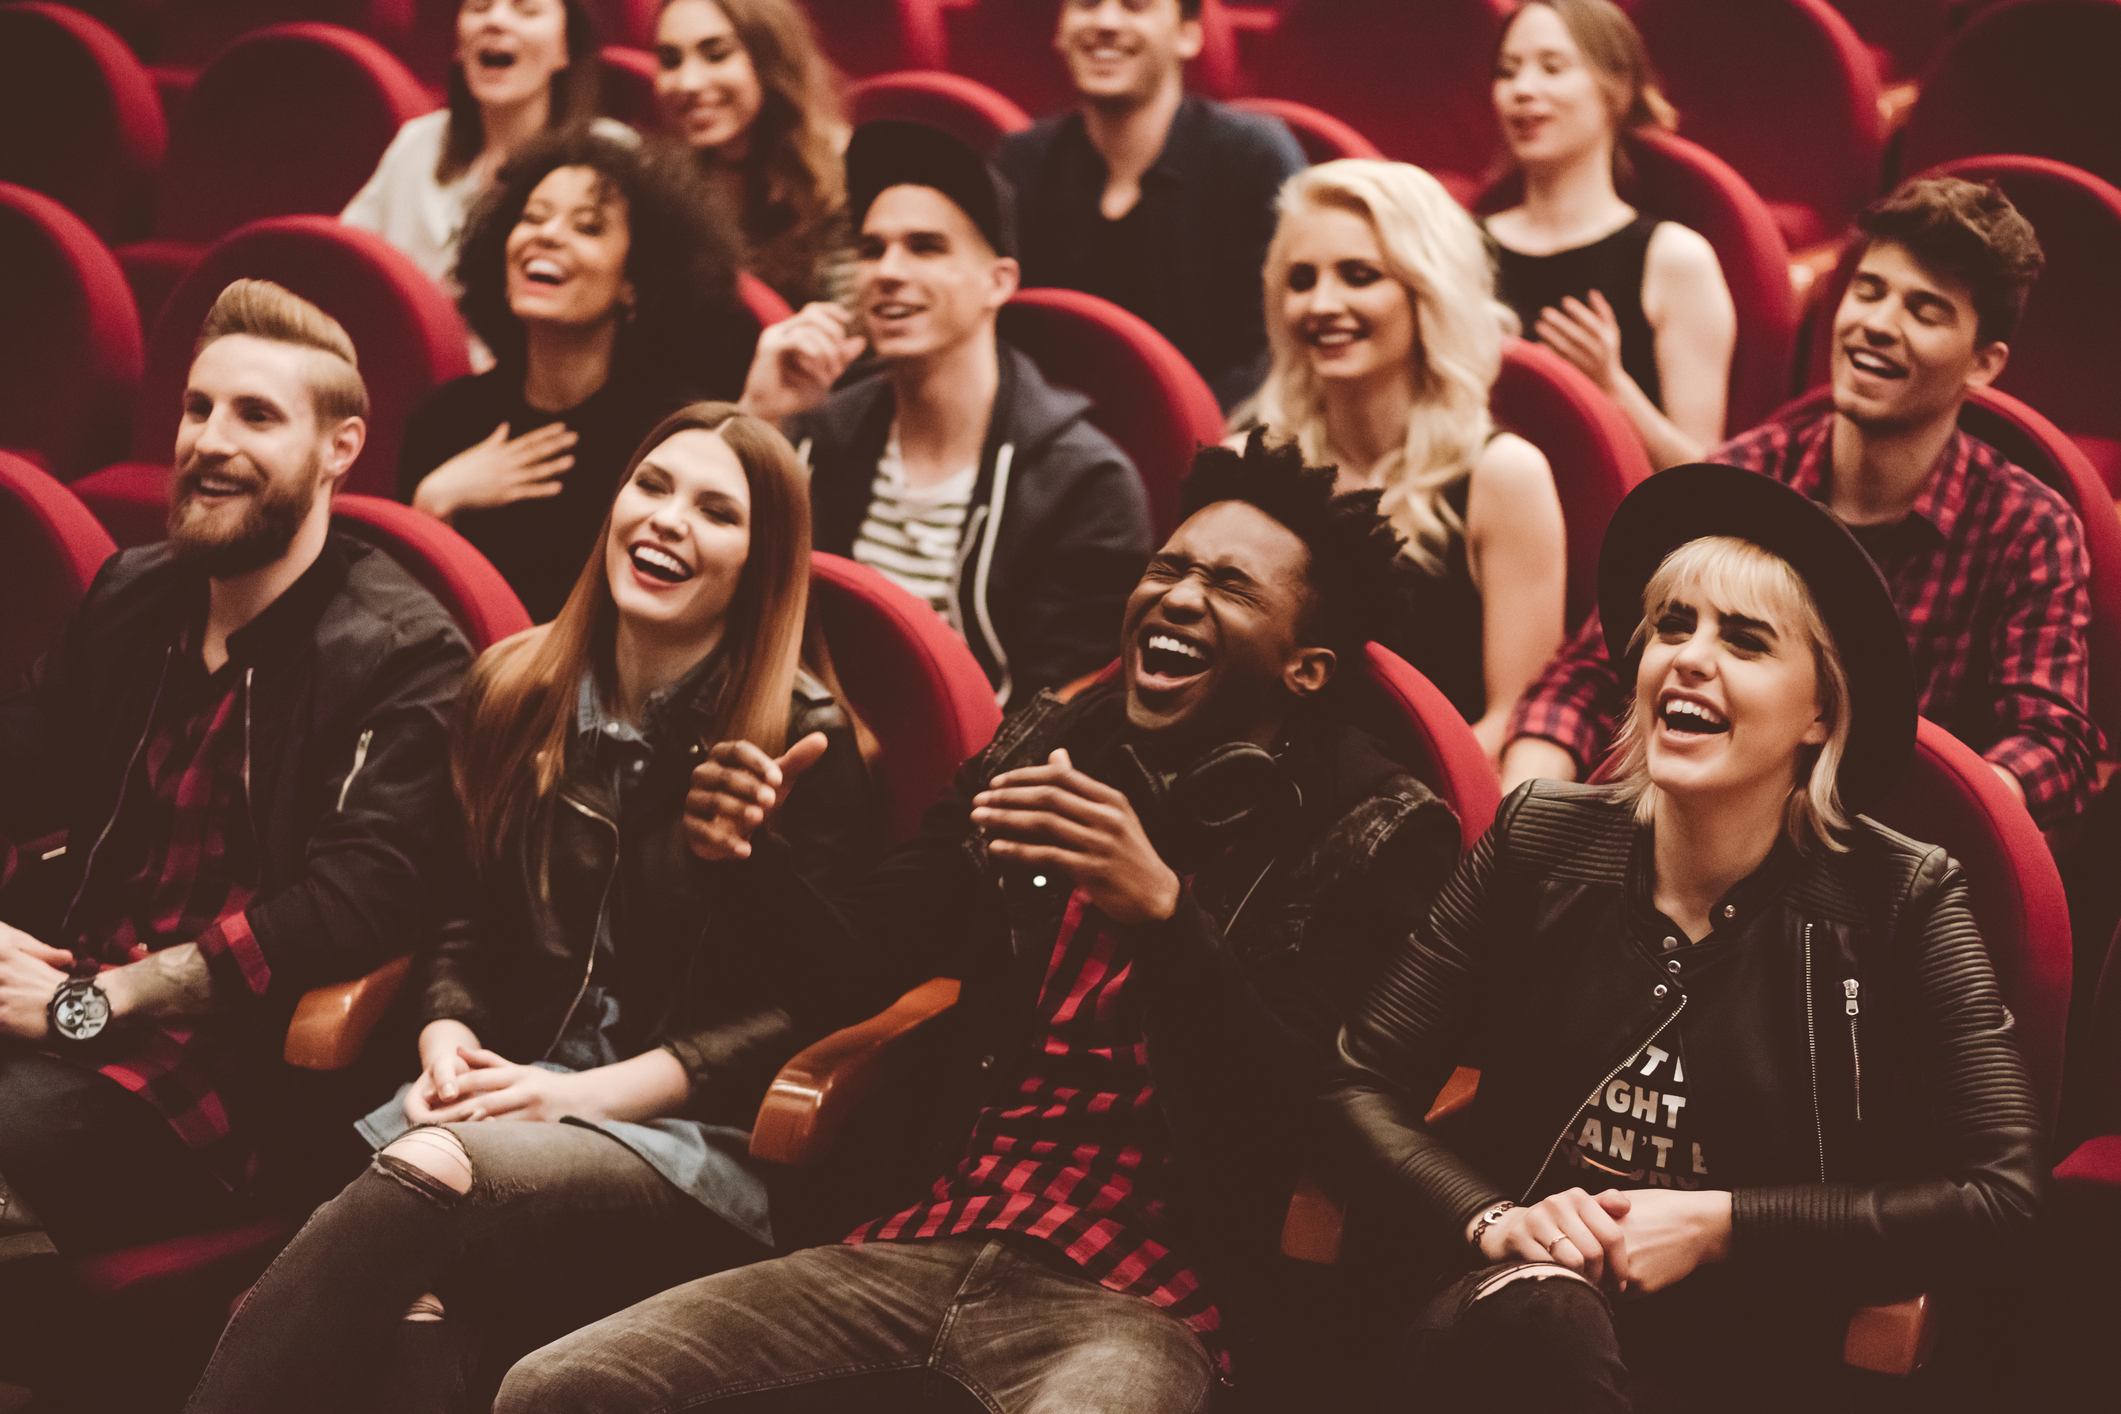 Multi-ethnic-group-of-people-in-the-movie-theater-597639502_2125x1416.jpeg